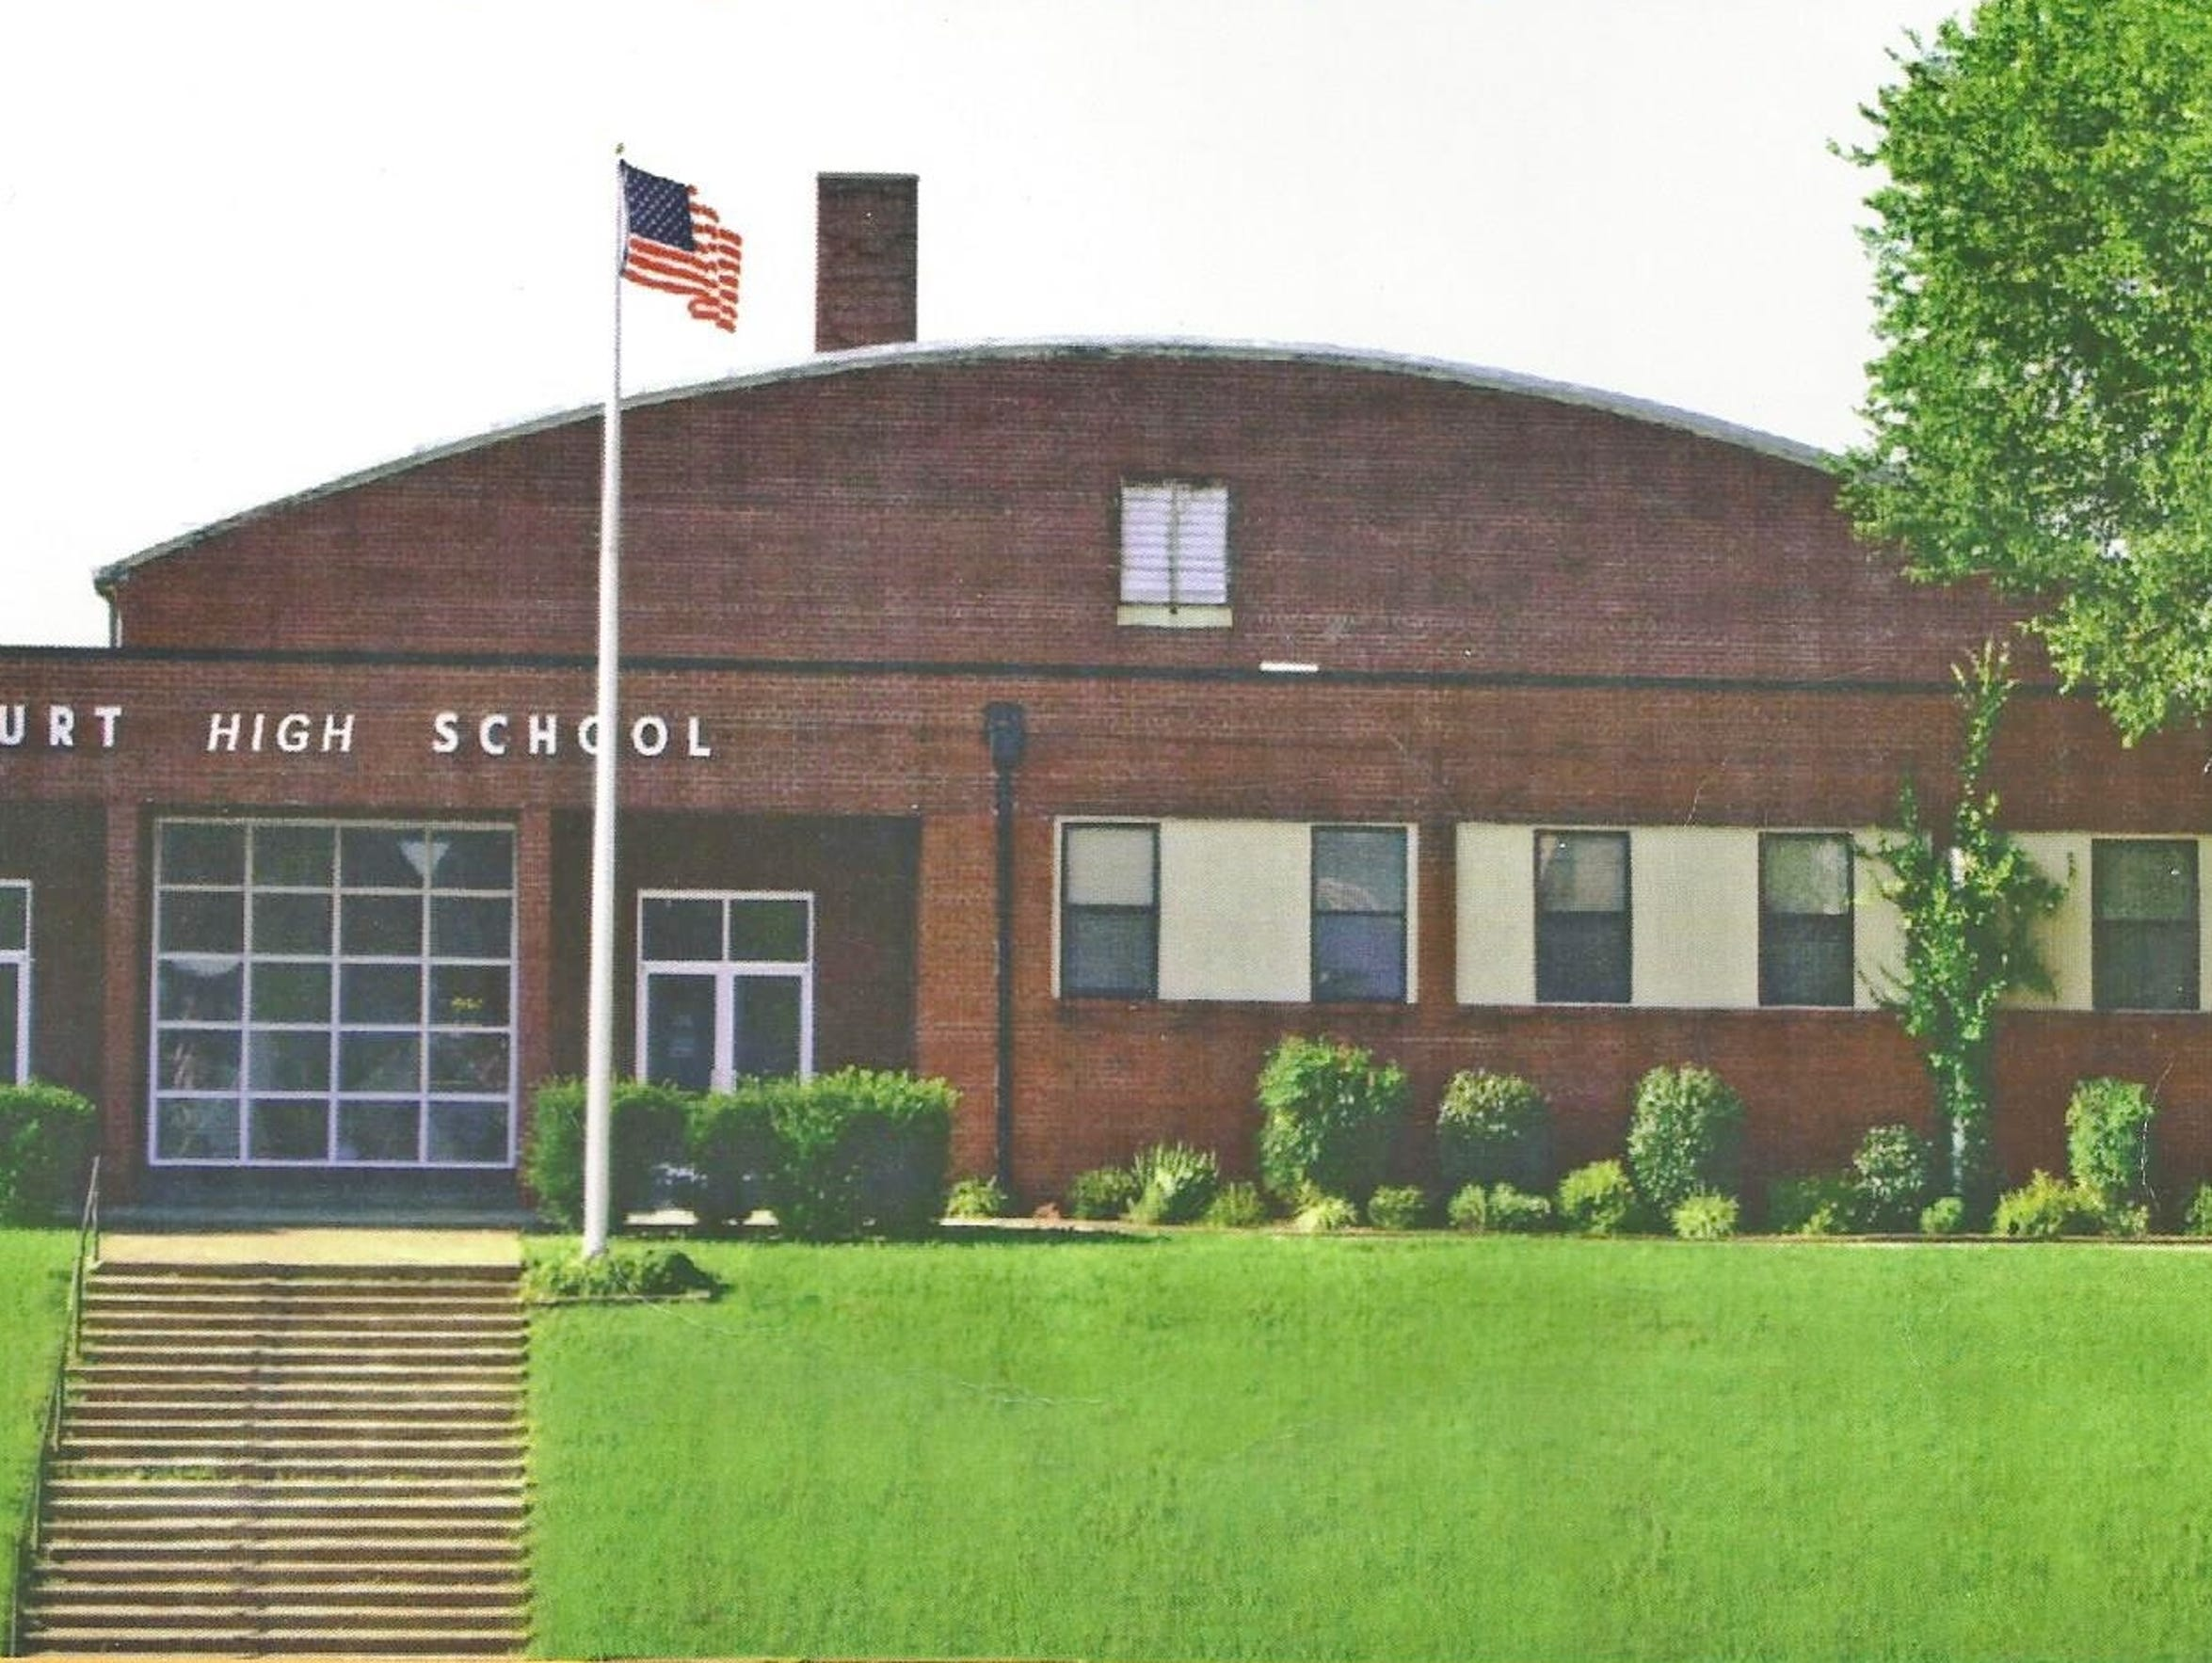 Burt High School in the 1960s.